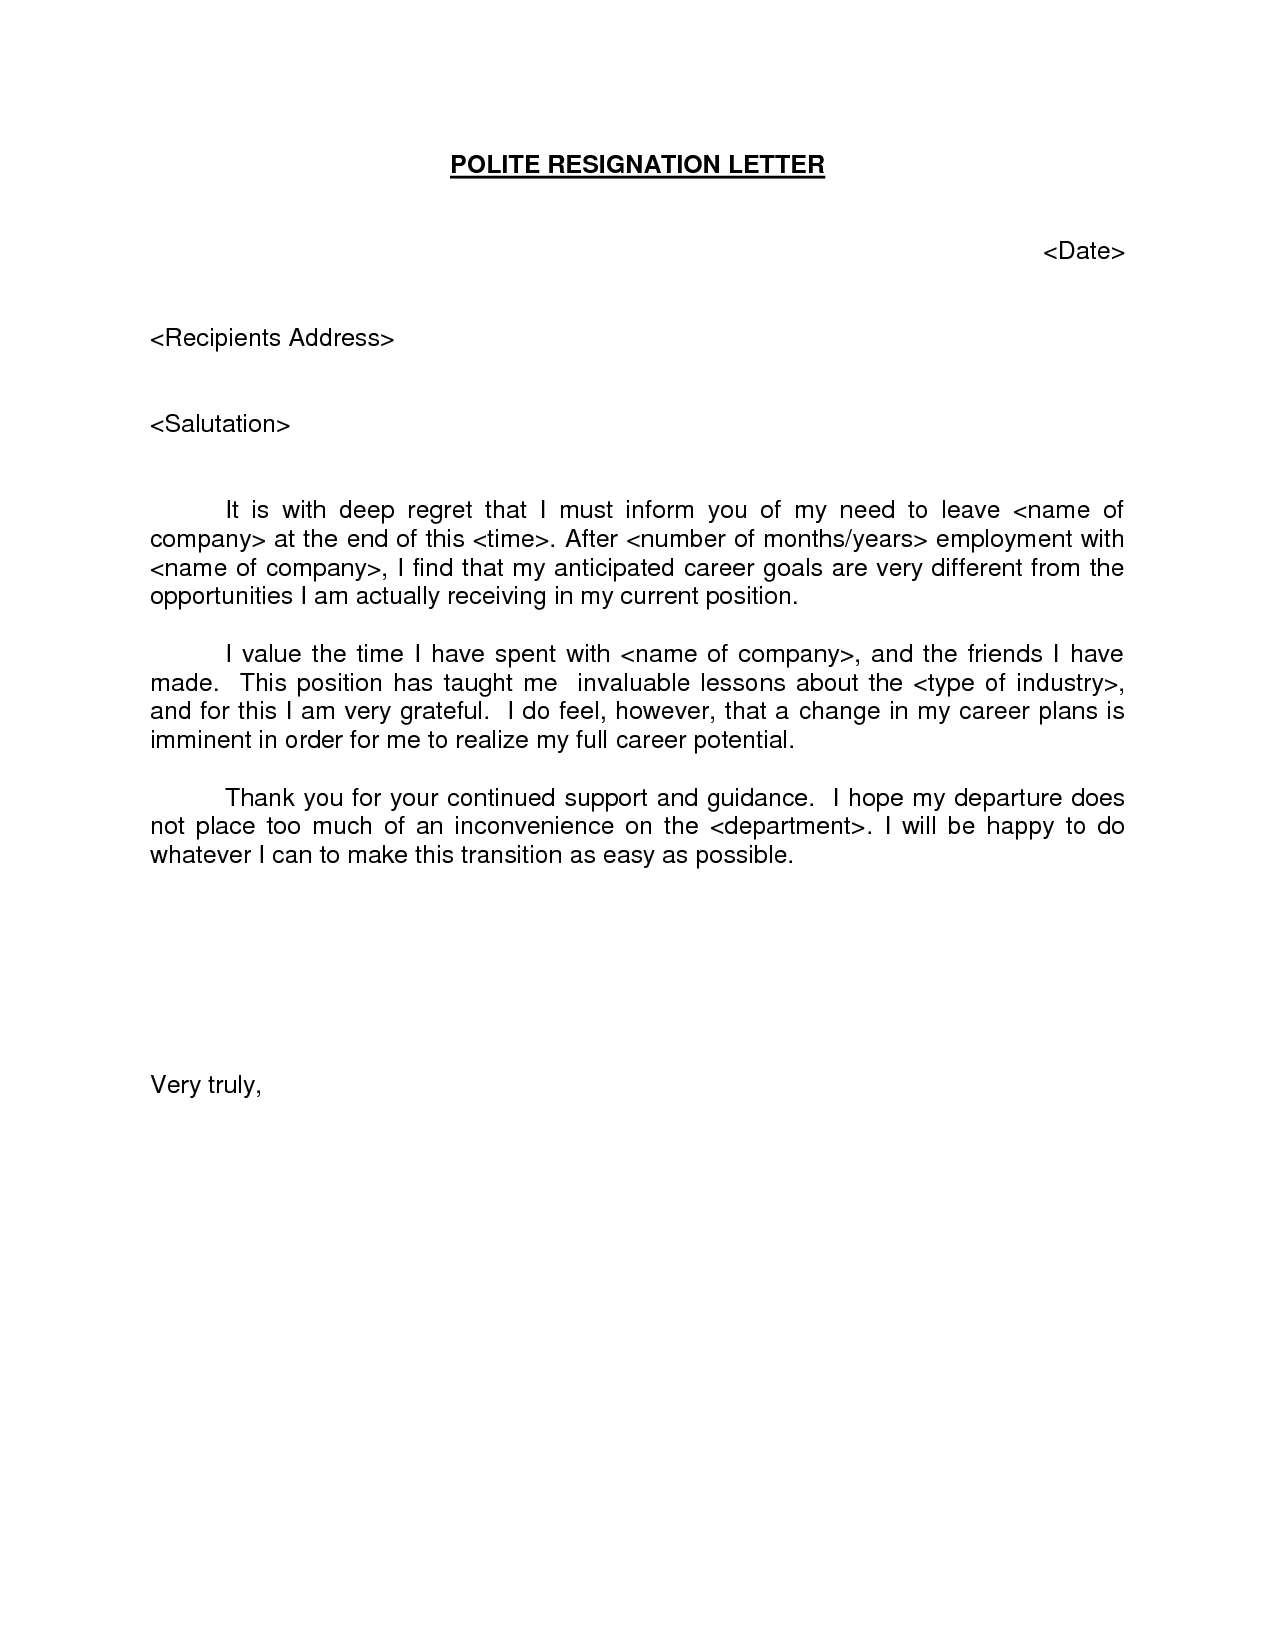 Pay for Delete Letter Template - Polite Resignation Letter Bestdealformoneywriting A Letter